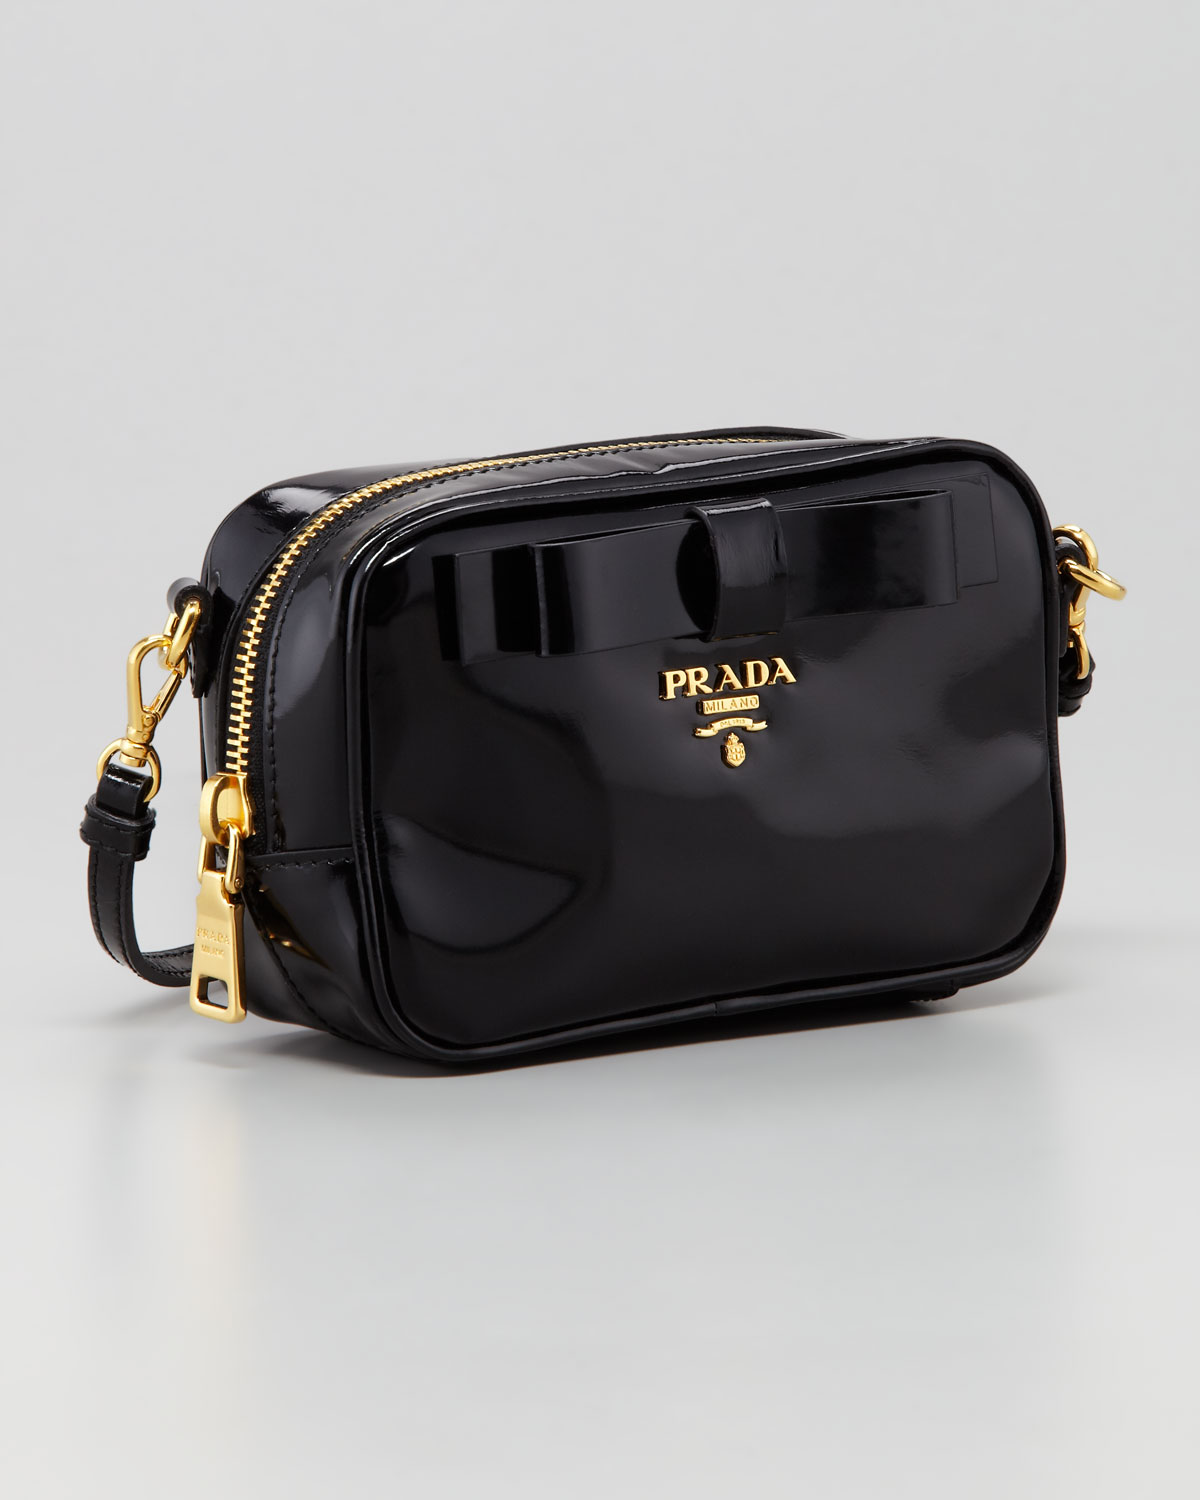 prada handbags leather - prada tessuto and spazzolato hobo, prada online shop deutschland